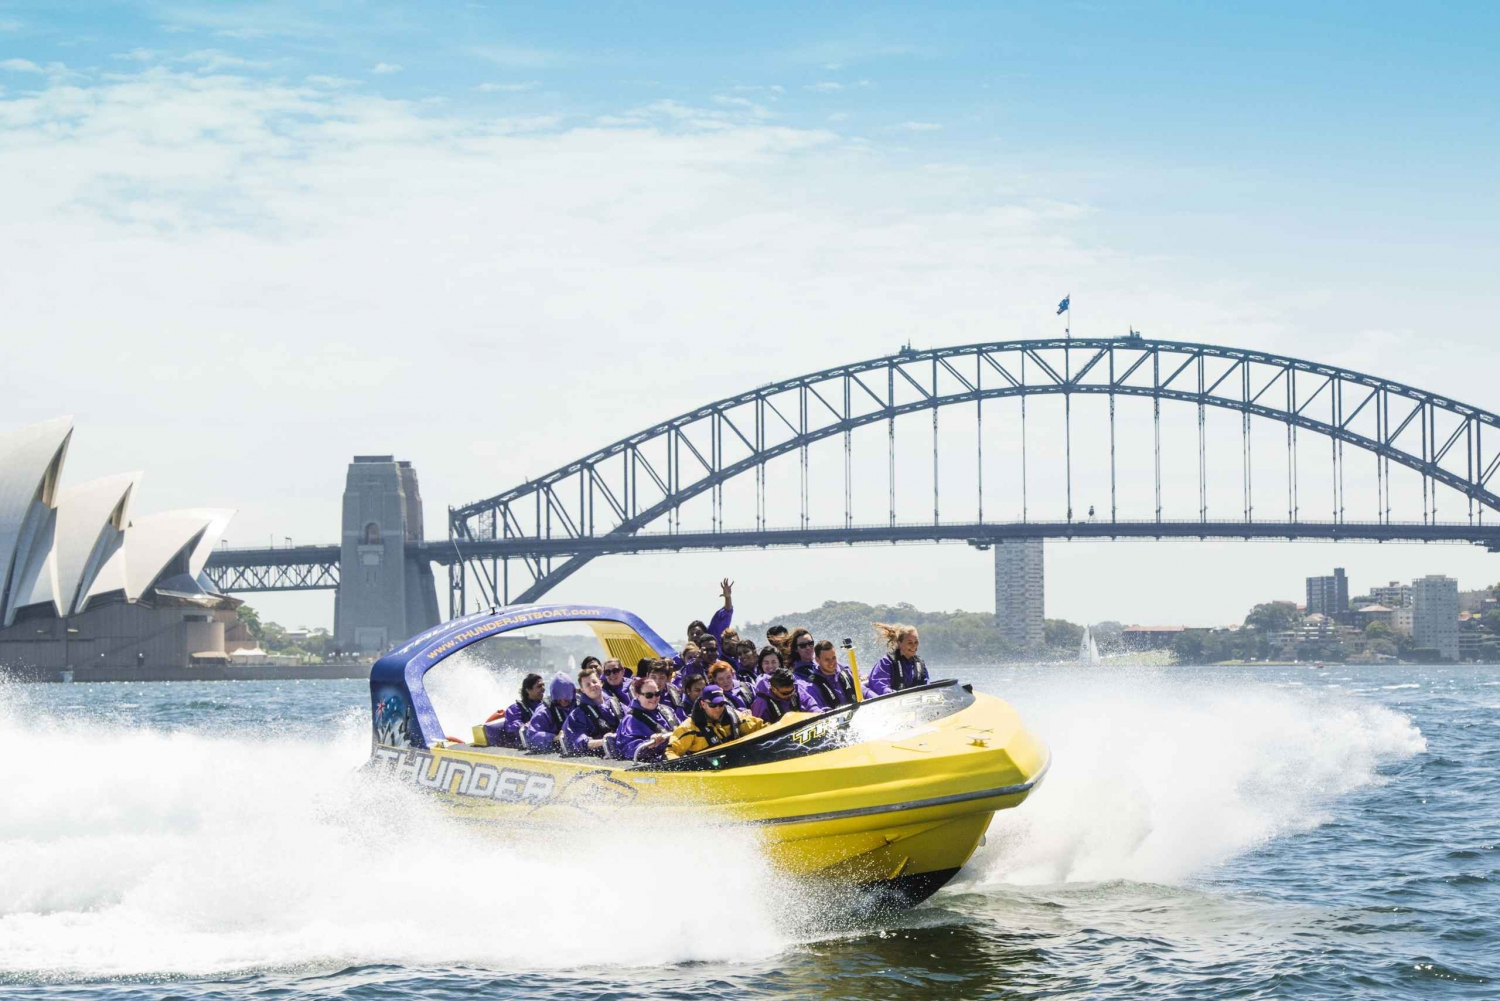 Sydney Harbour: 45-Minute Extreme Adrenaline Rush Ride